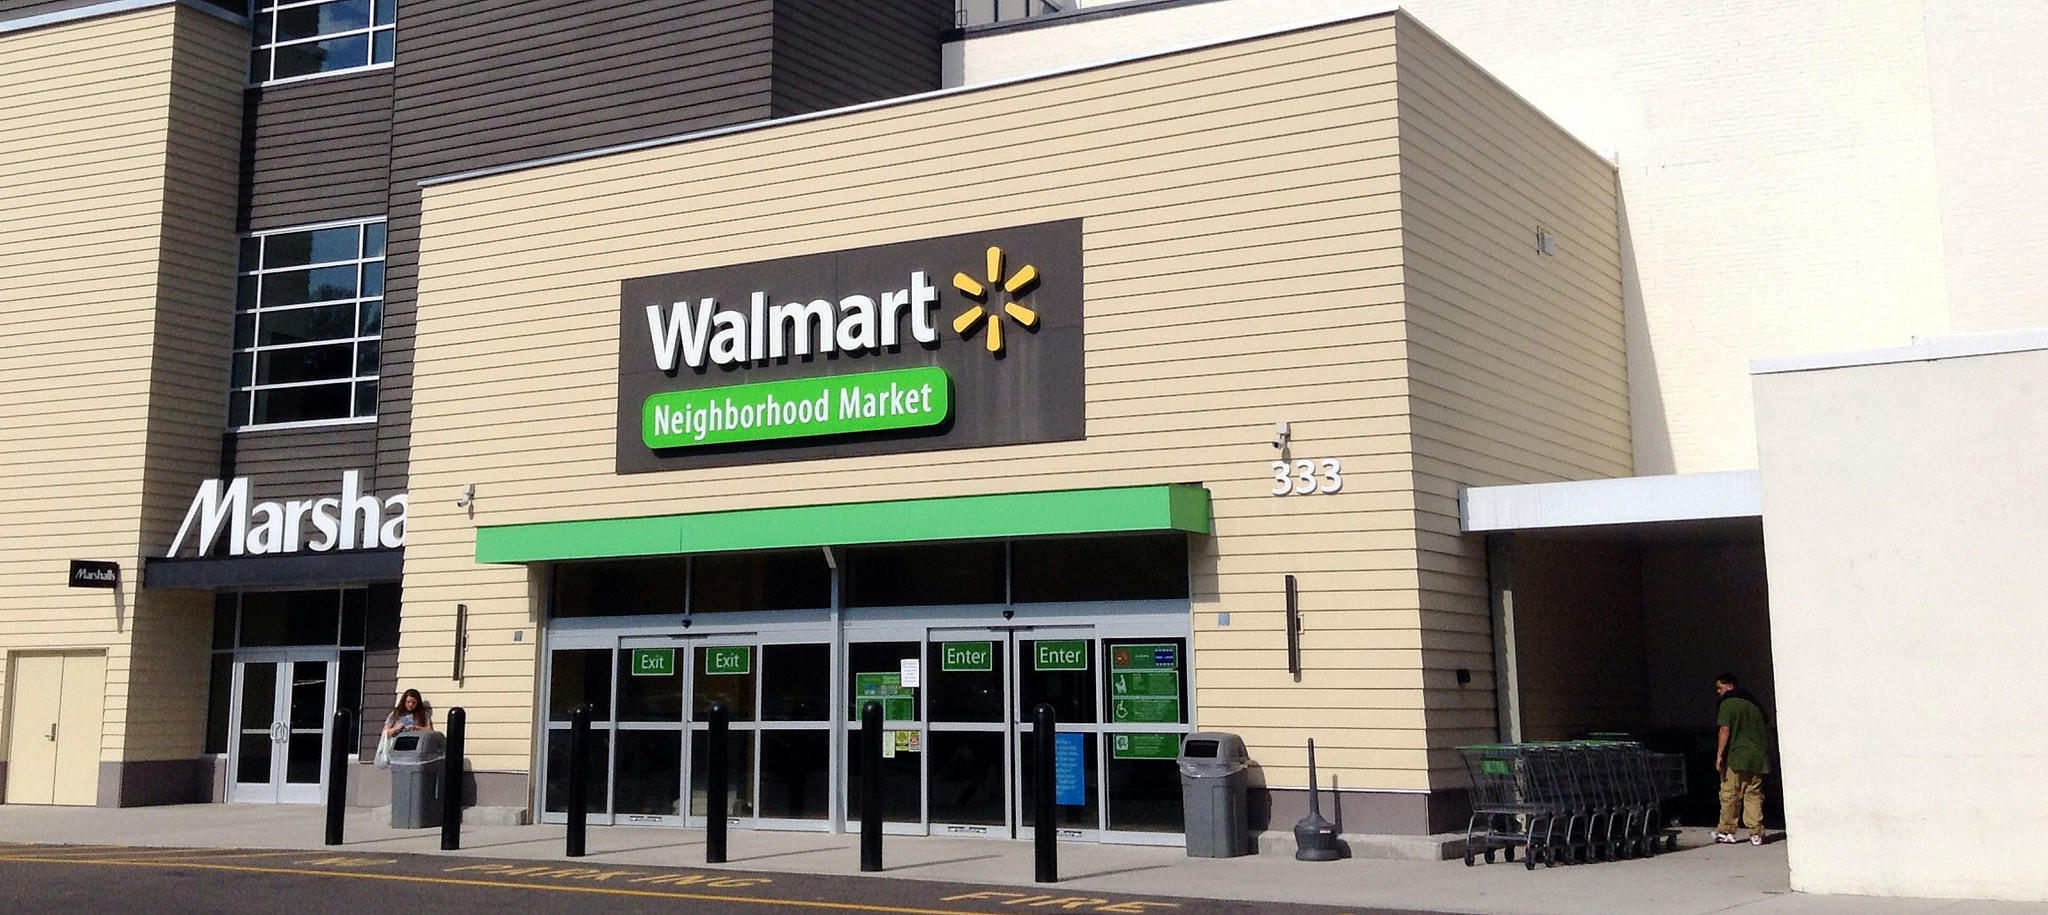 The Bishops Corner Walmart Neighborhood Market is among the 153 stores nationwide that will be closing. & West Hartford Walmart to Close Its Doors | Connecticut Public Radio